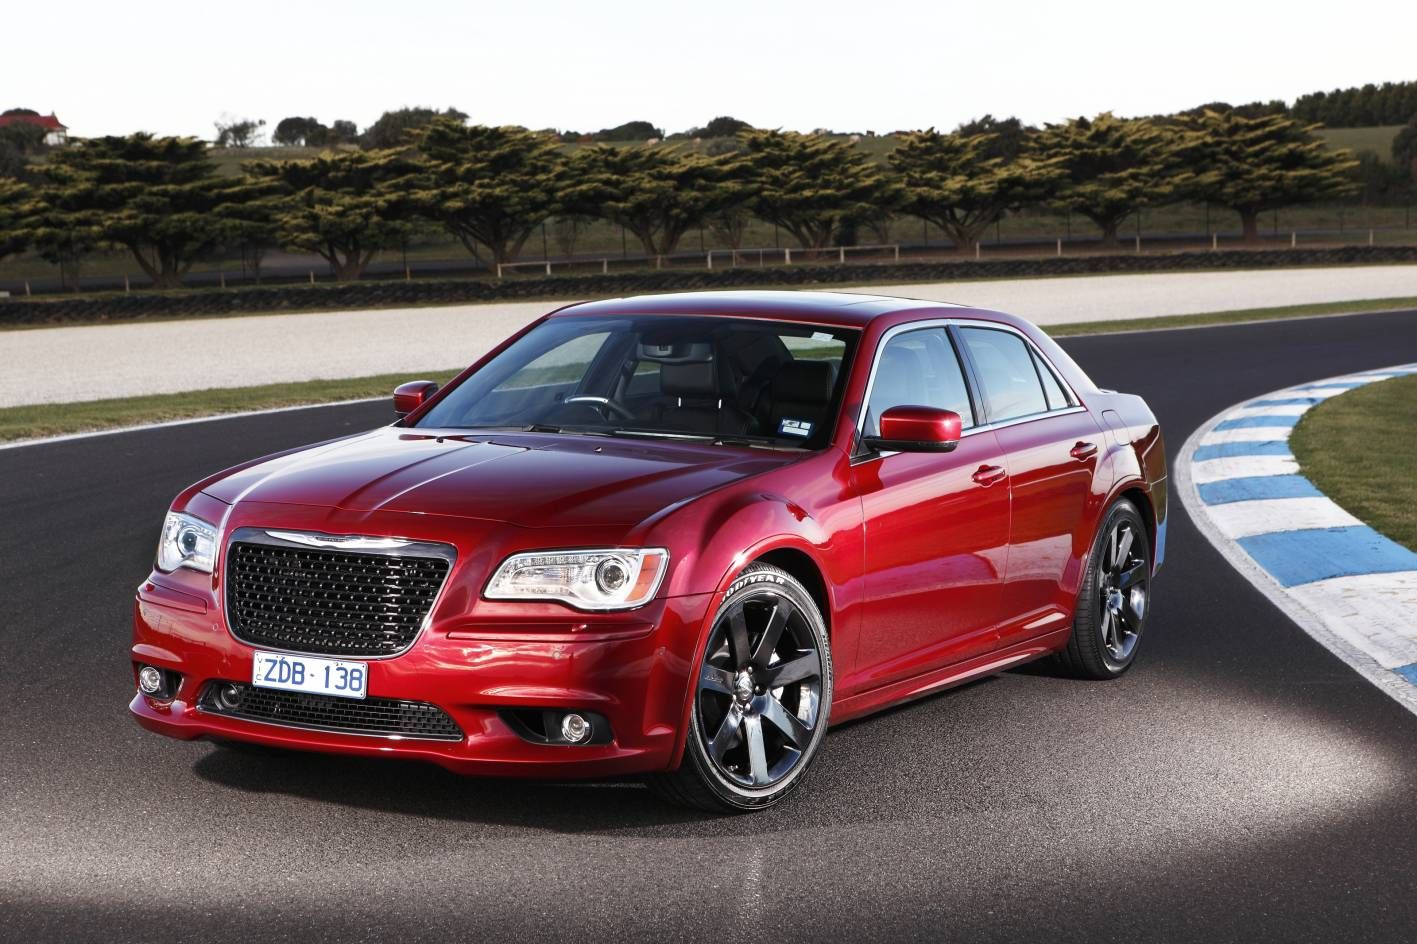 http://upload.wikimedia.org/wikipedia/commons/4/42/2013_Chrysler_300C_SRT8_First_Drive_%288165626487%29.jpg